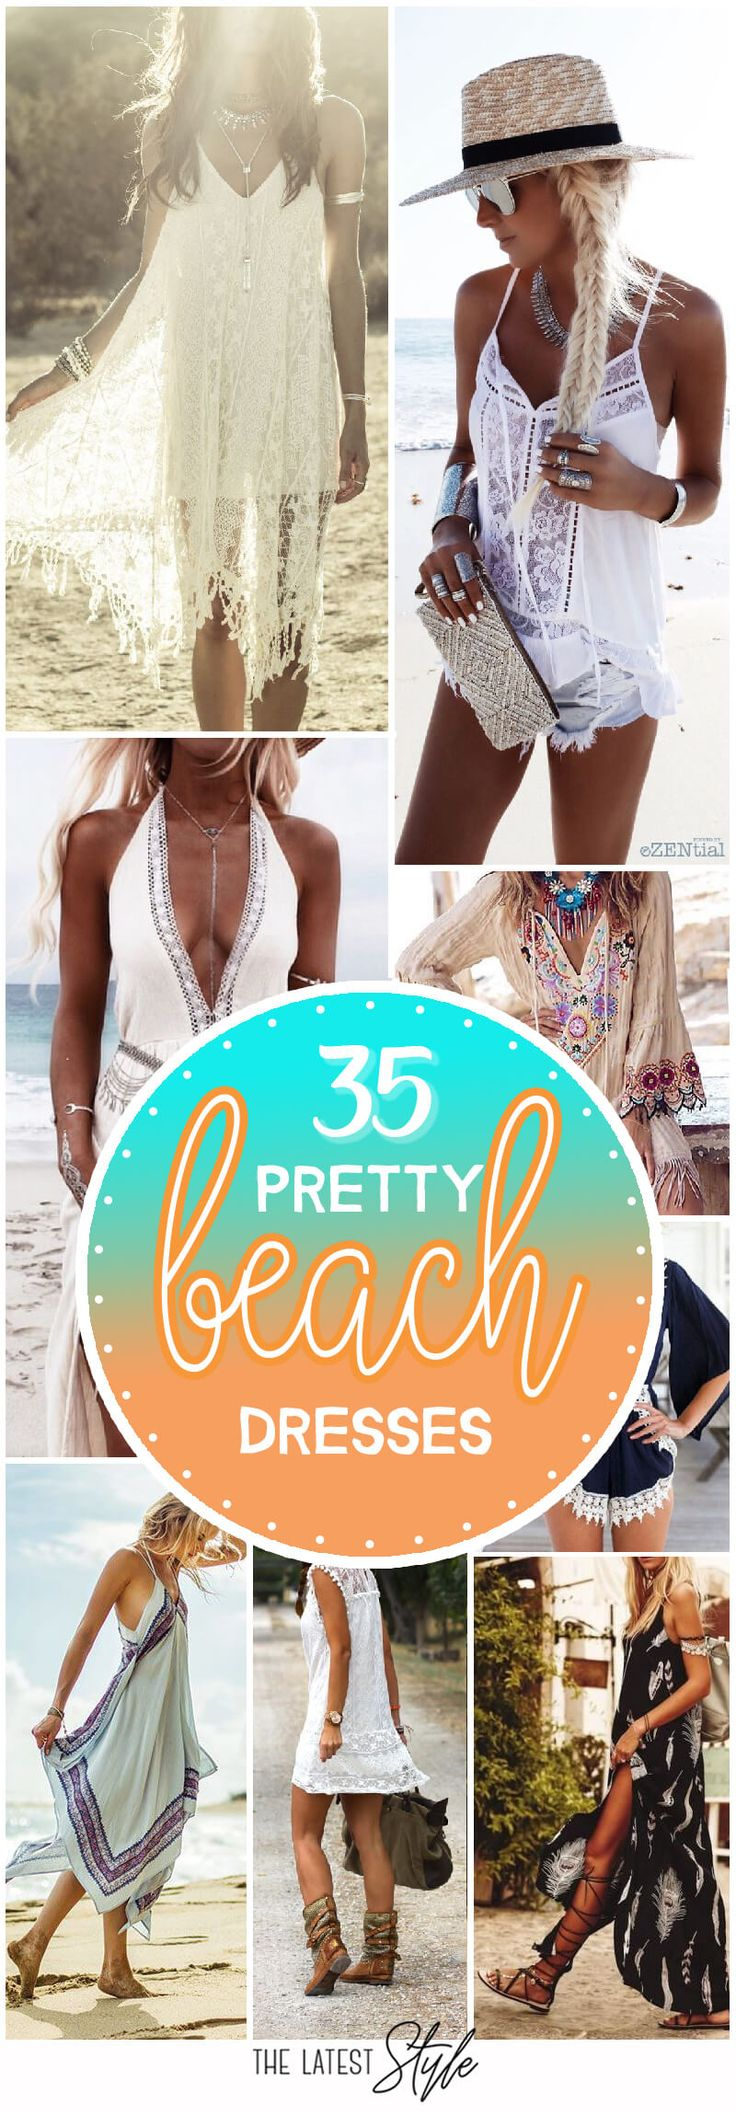 35 Pretty Beach Dresses For This Summer